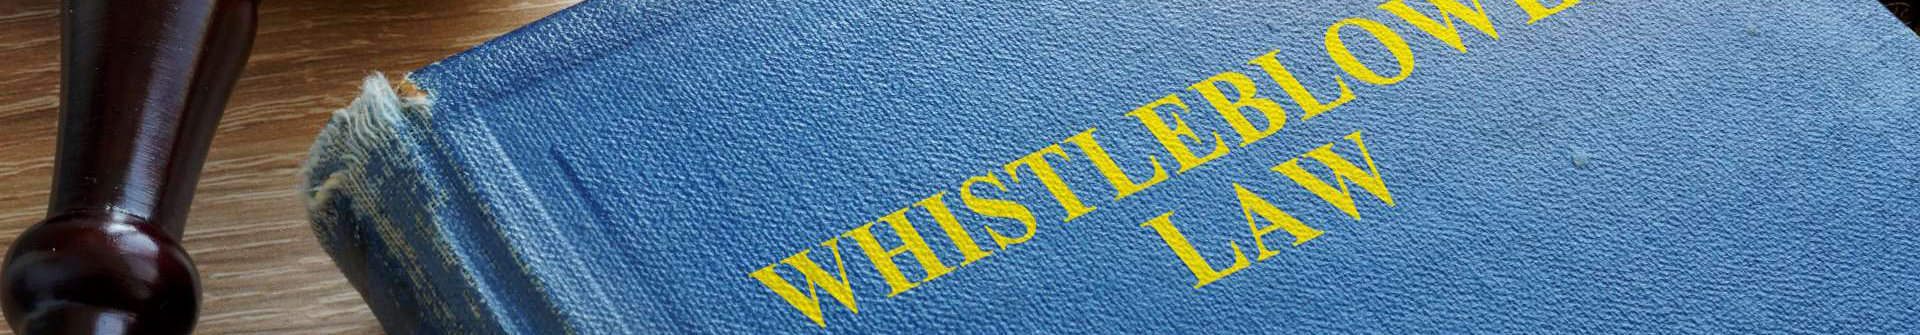 a book titled Whistleblower Law.